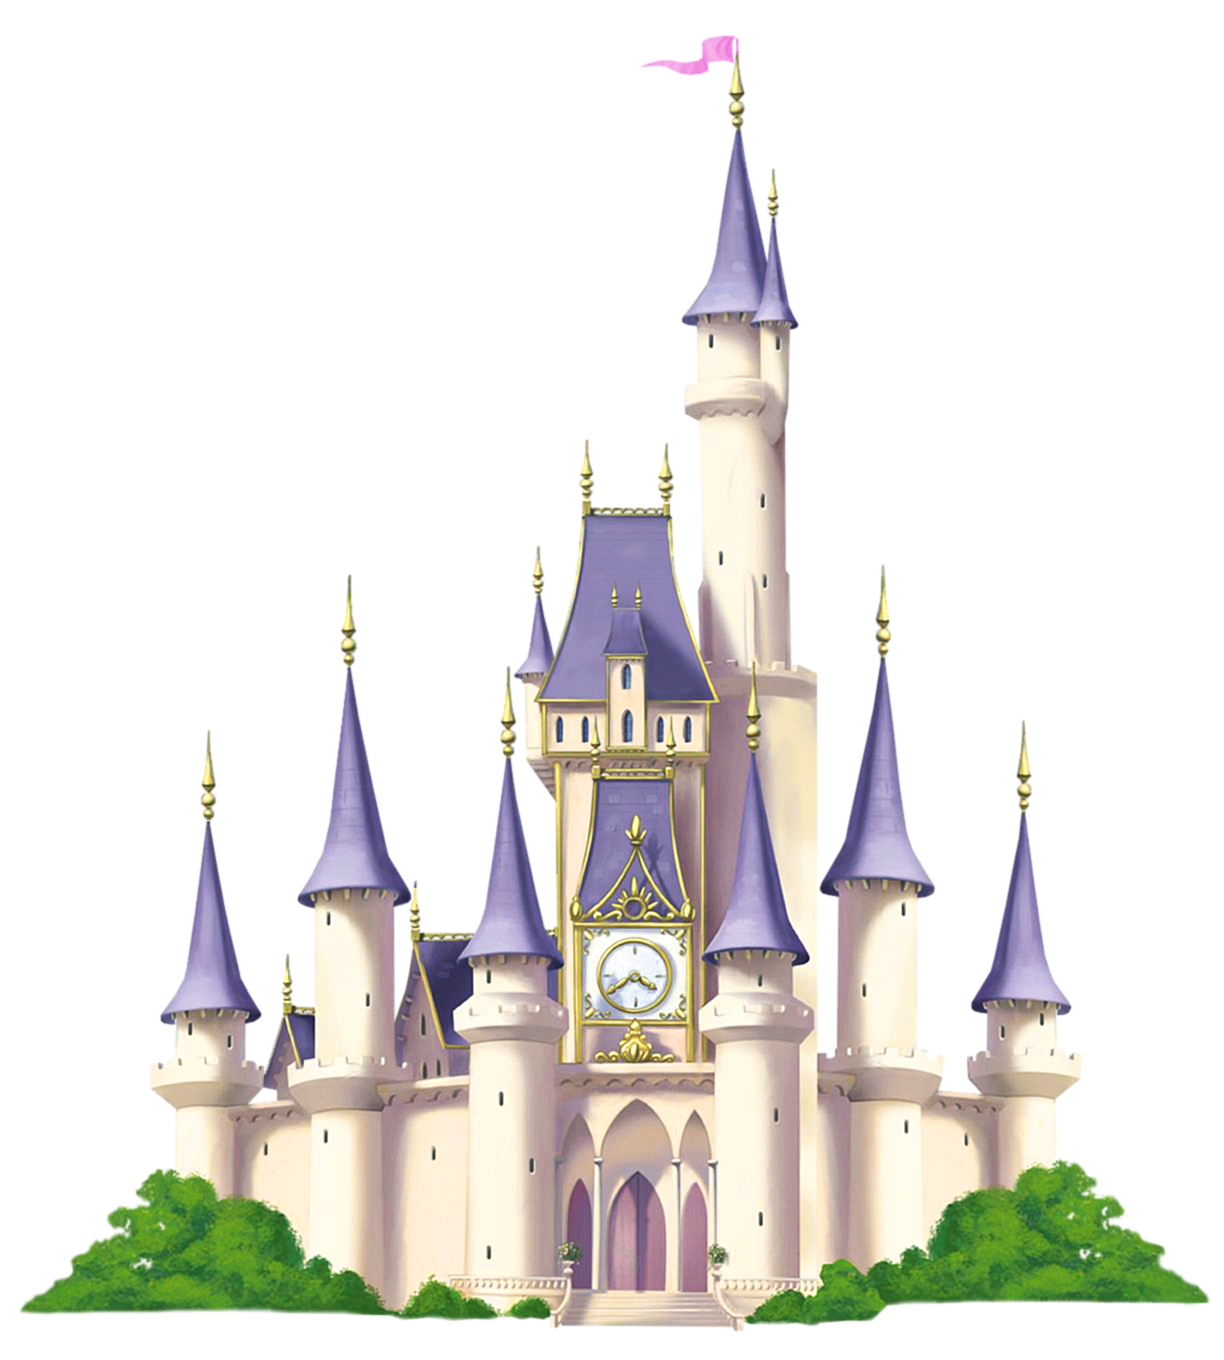 Transparent castle png picture. Palace clipart cinderella palace